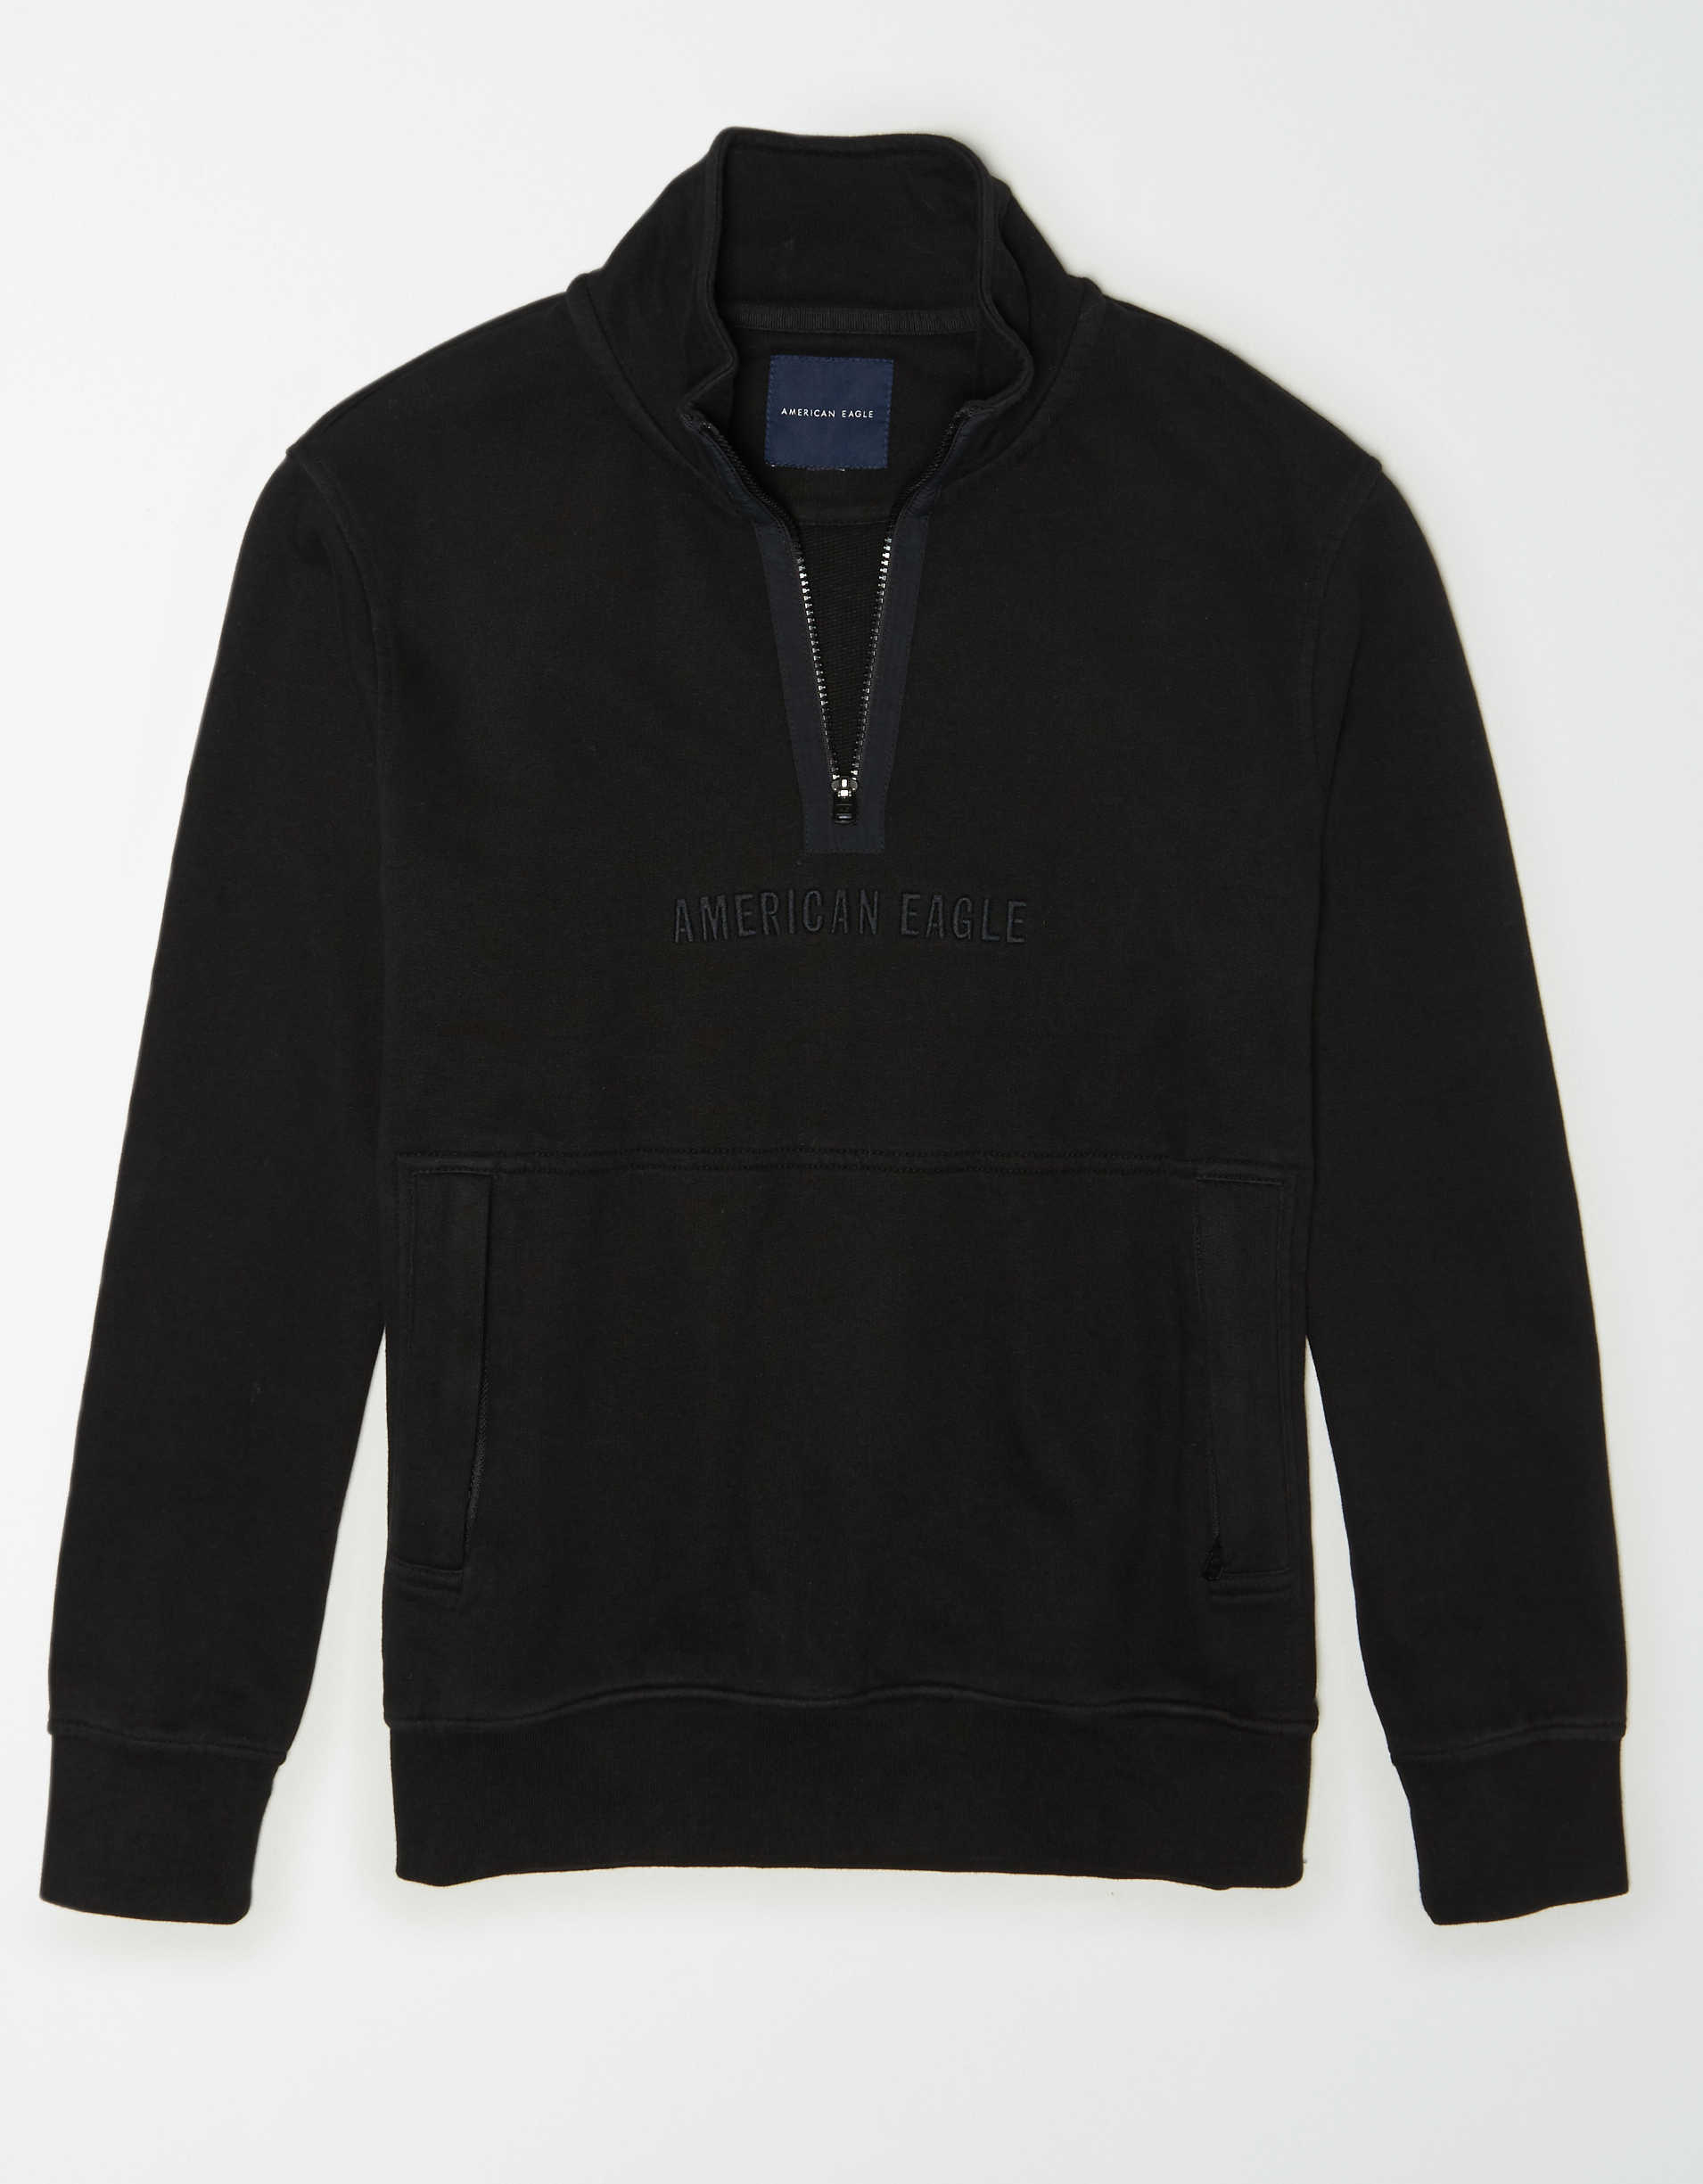 AE Fleece Graphic Quarter-Zip Pullover Sweatshirt